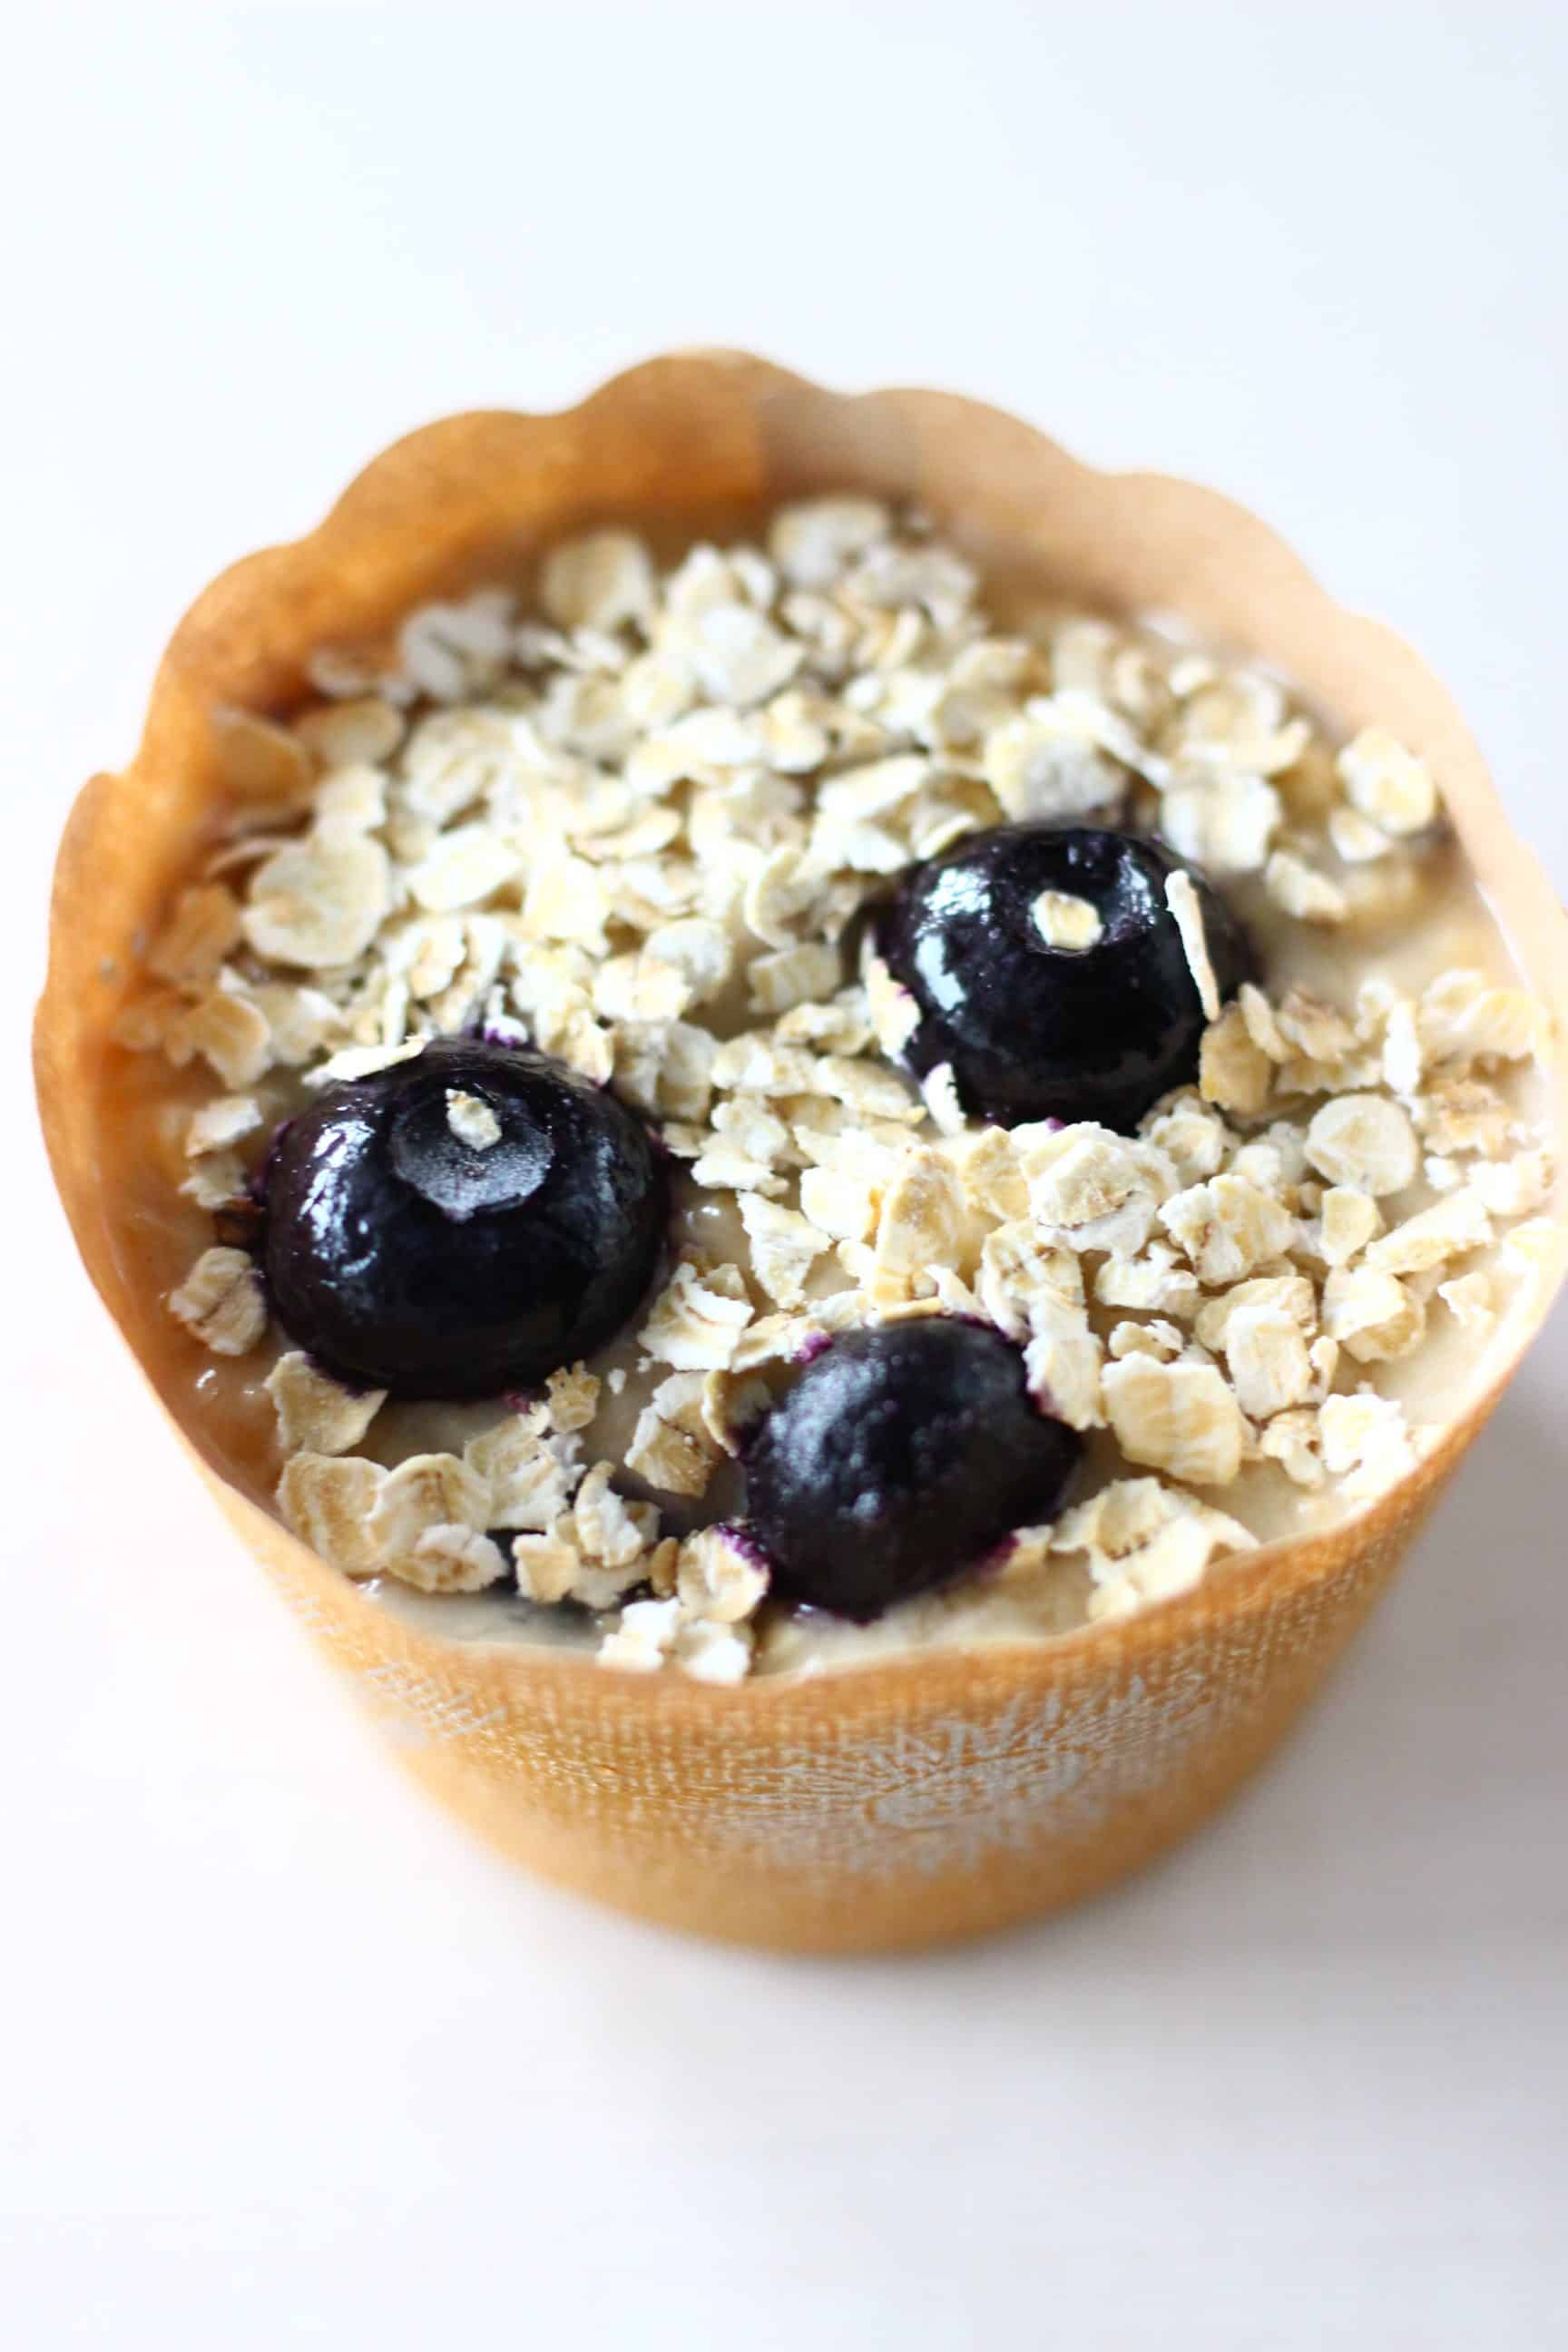 A brown muffin case filled with raw gluten-free vegan blueberry oatmeal muffin batter sprinkled with oats